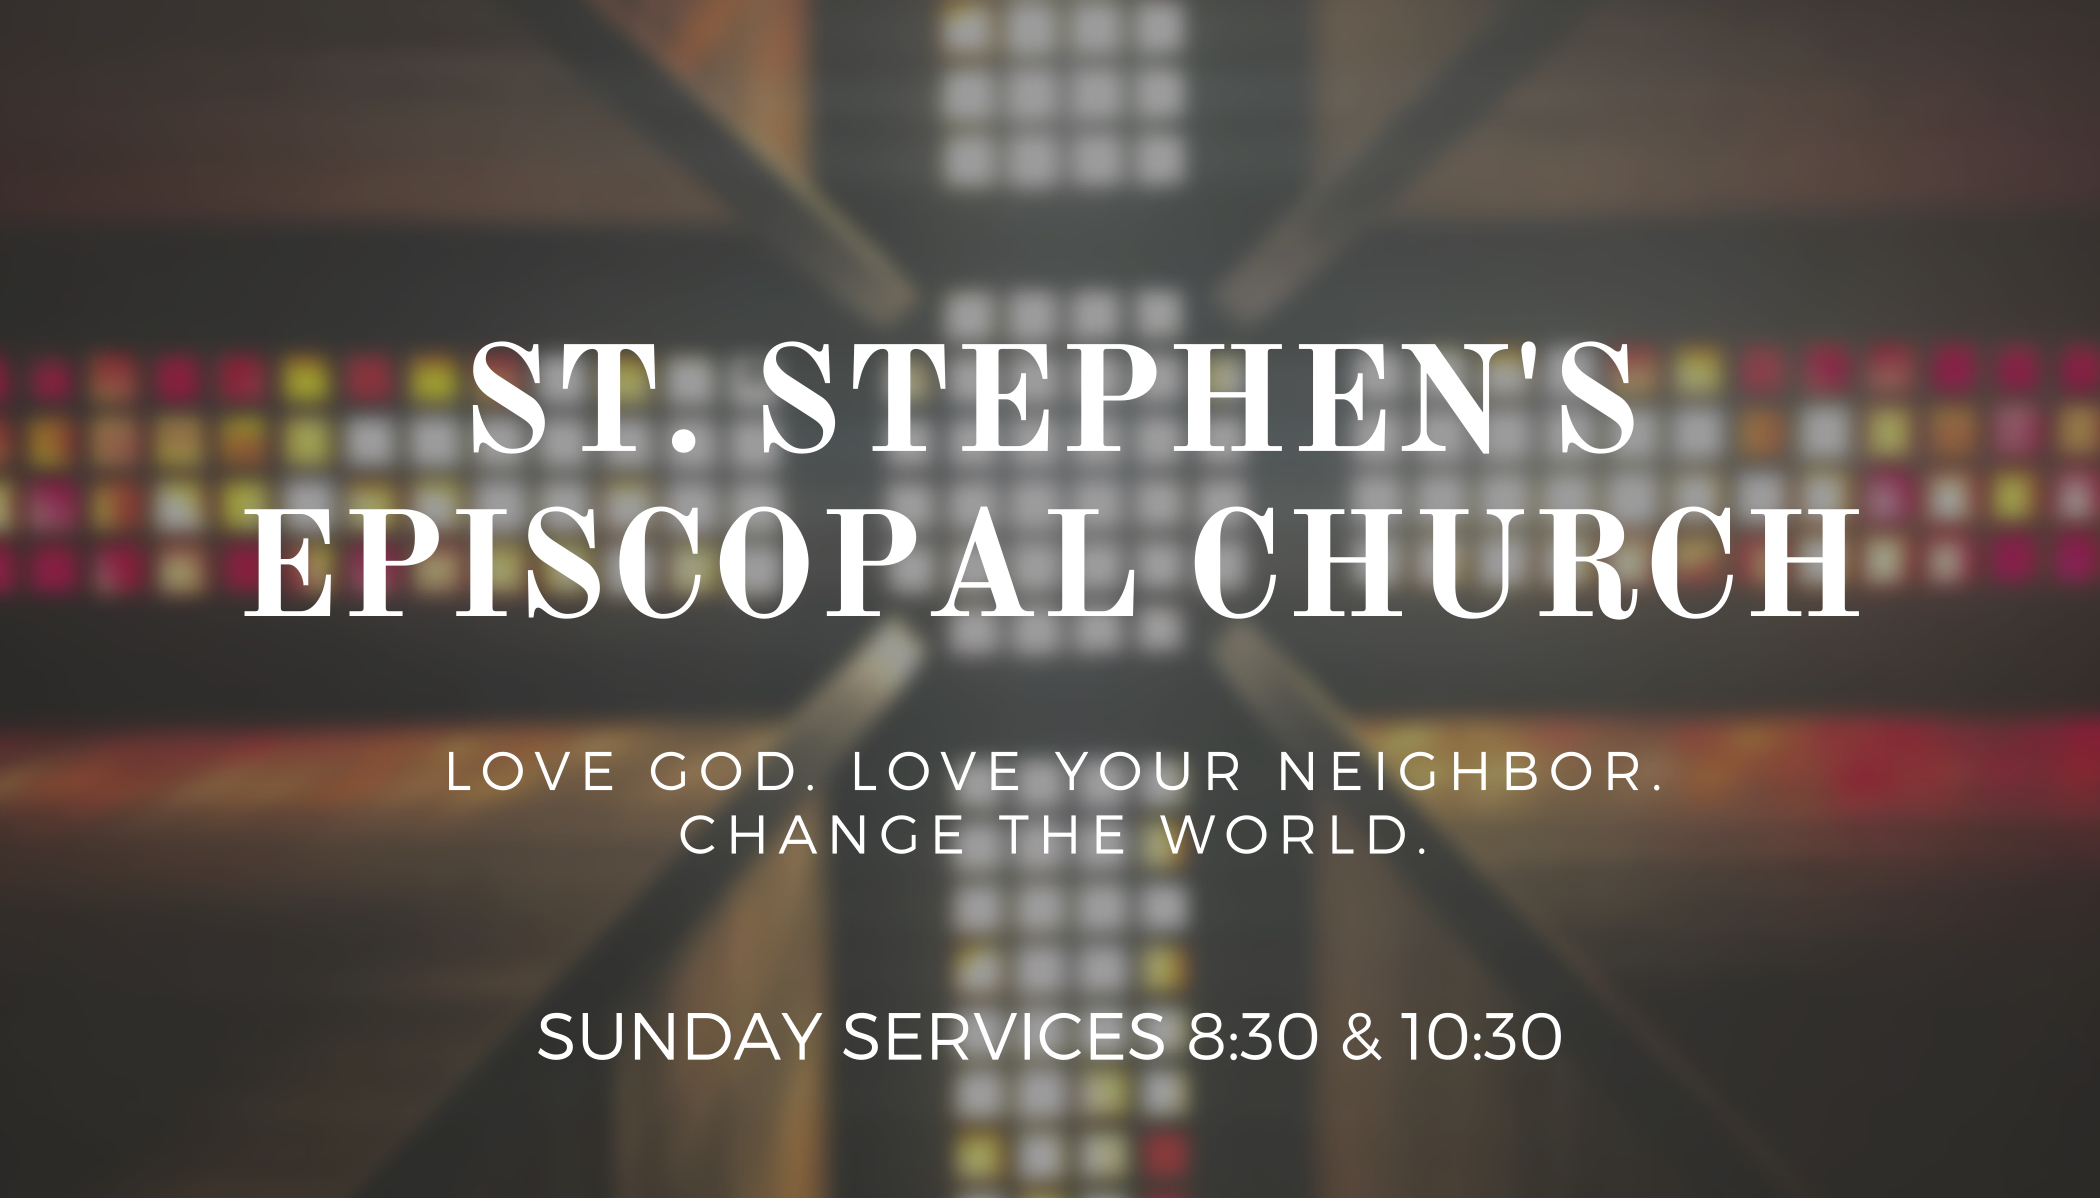 St. Stephen's Episcopal